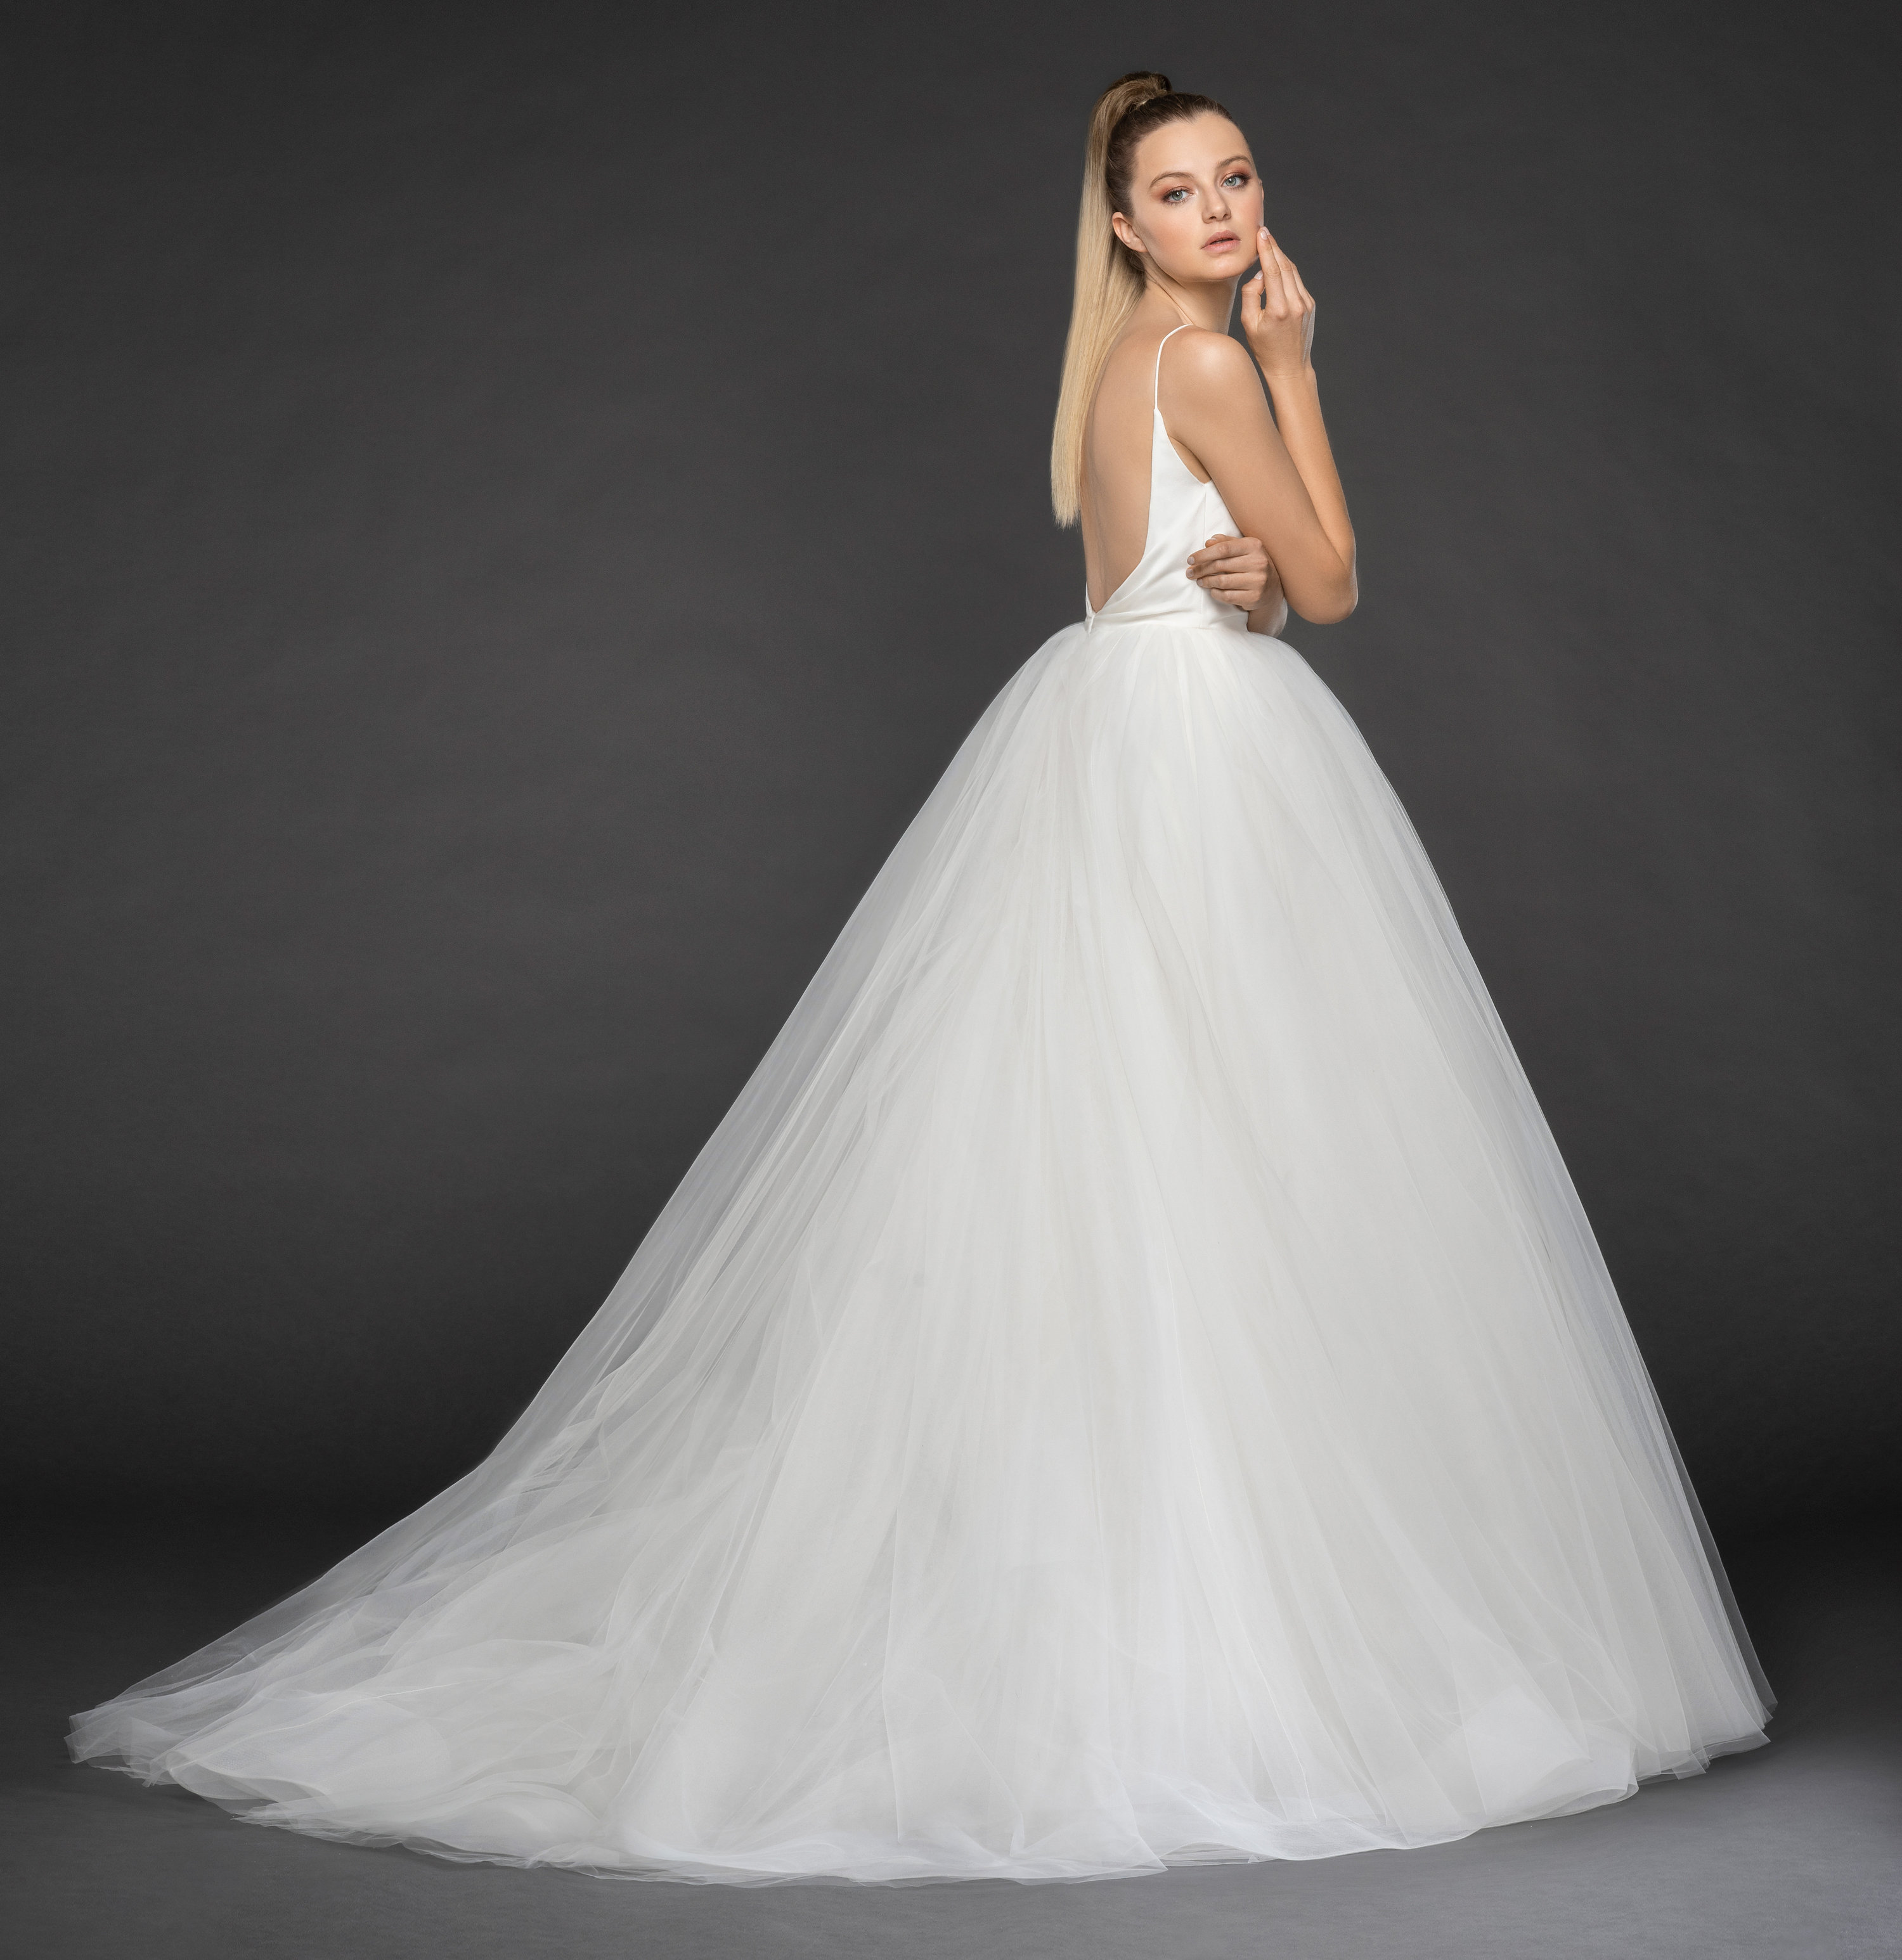 Wedding Gown With Neck Detail: Spaghetti Strap Deep V-neck Ruched Bodice And Tulle Skirt